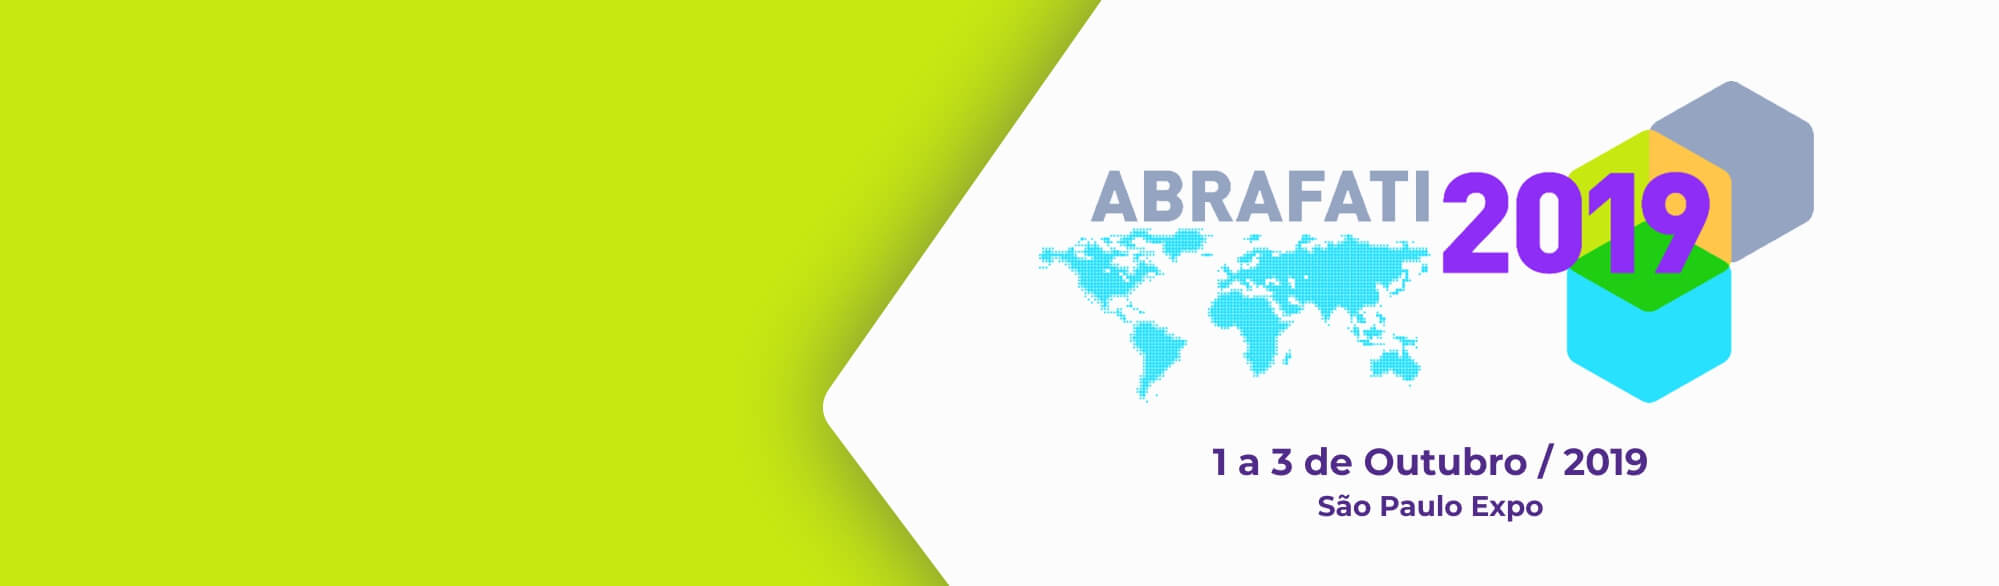 ESTAREMOS PRESENTES NA ABRAFATI 2019